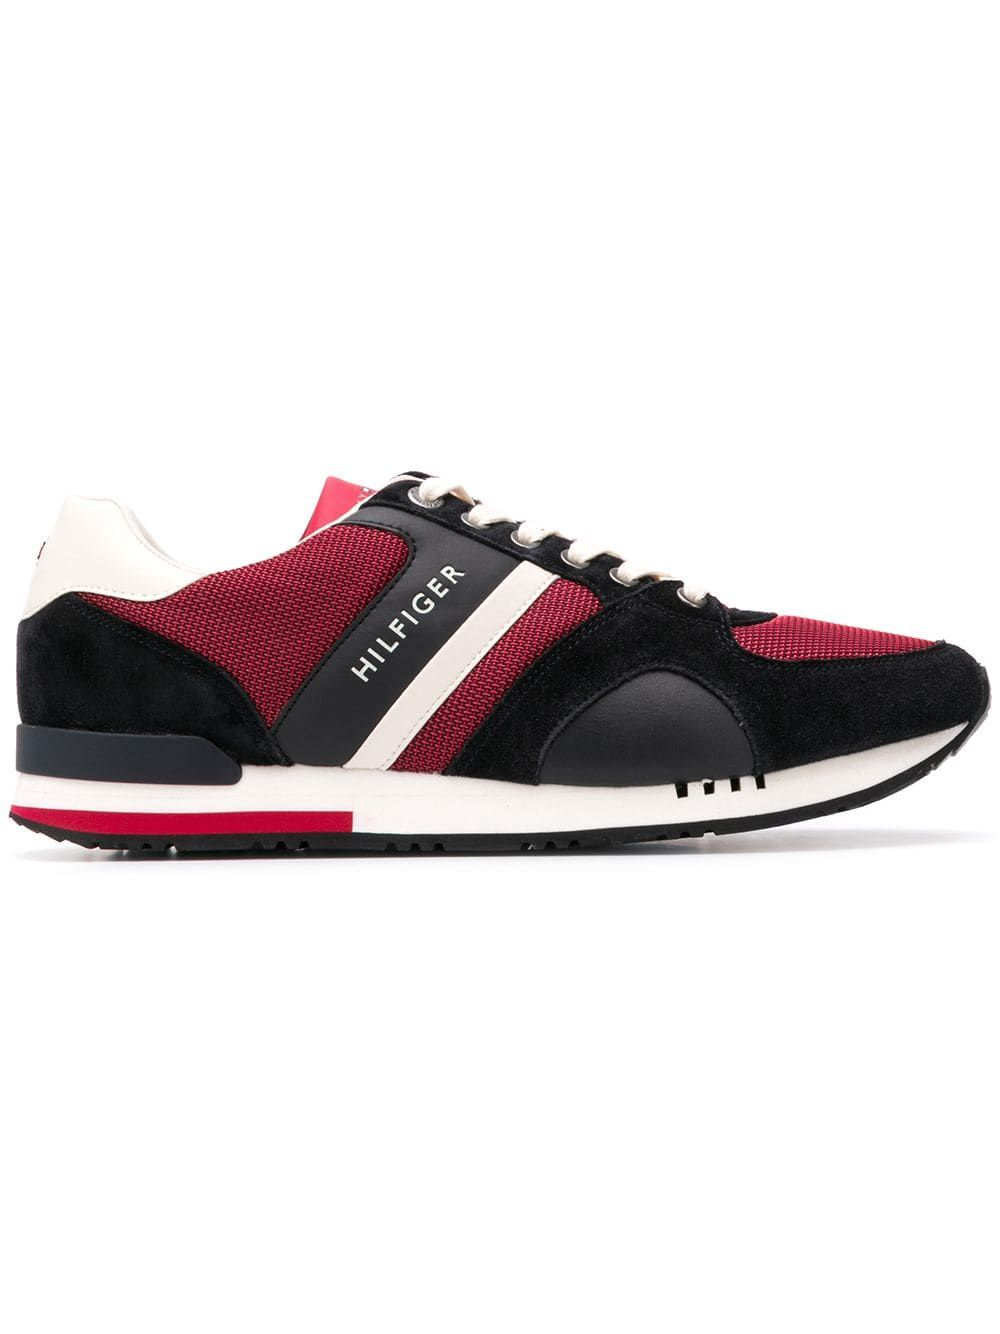 6b748d7925e32 TOMMY HILFIGER TOMMY HILFIGER RUNNER SNEAKERS - RED.  tommyhilfiger  shoes